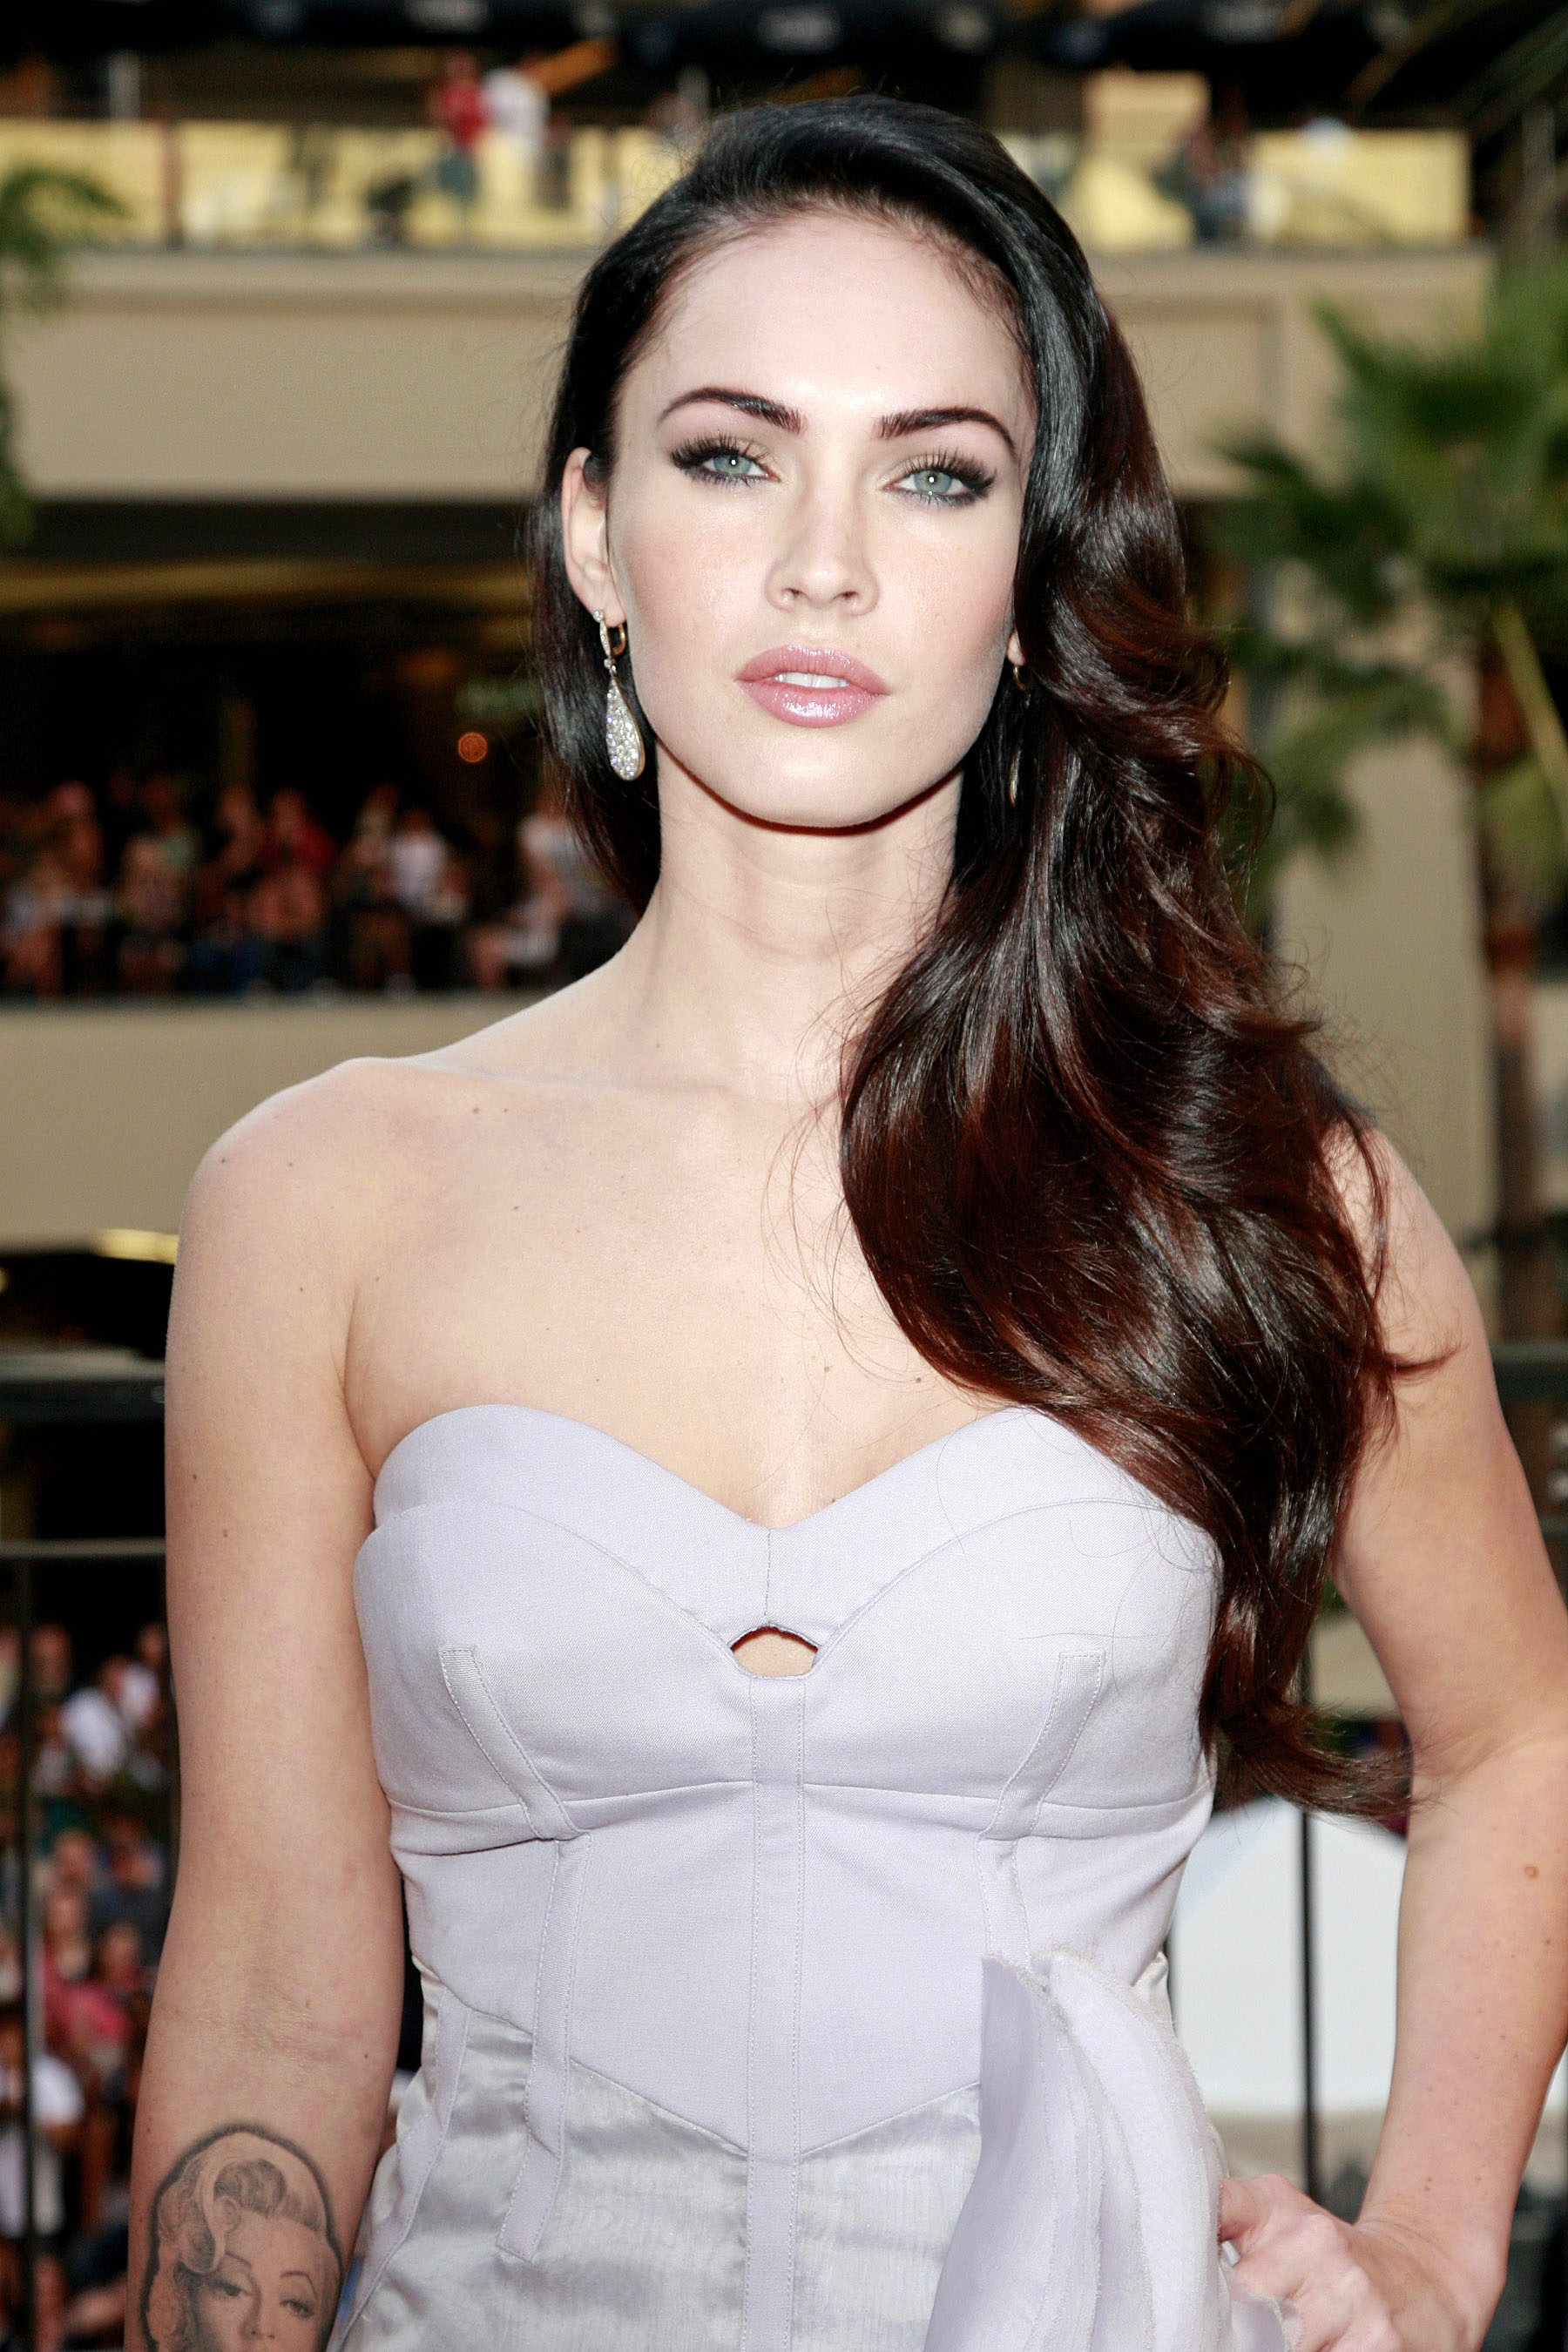 Megan Fox to shun sexy film roles following son's birth